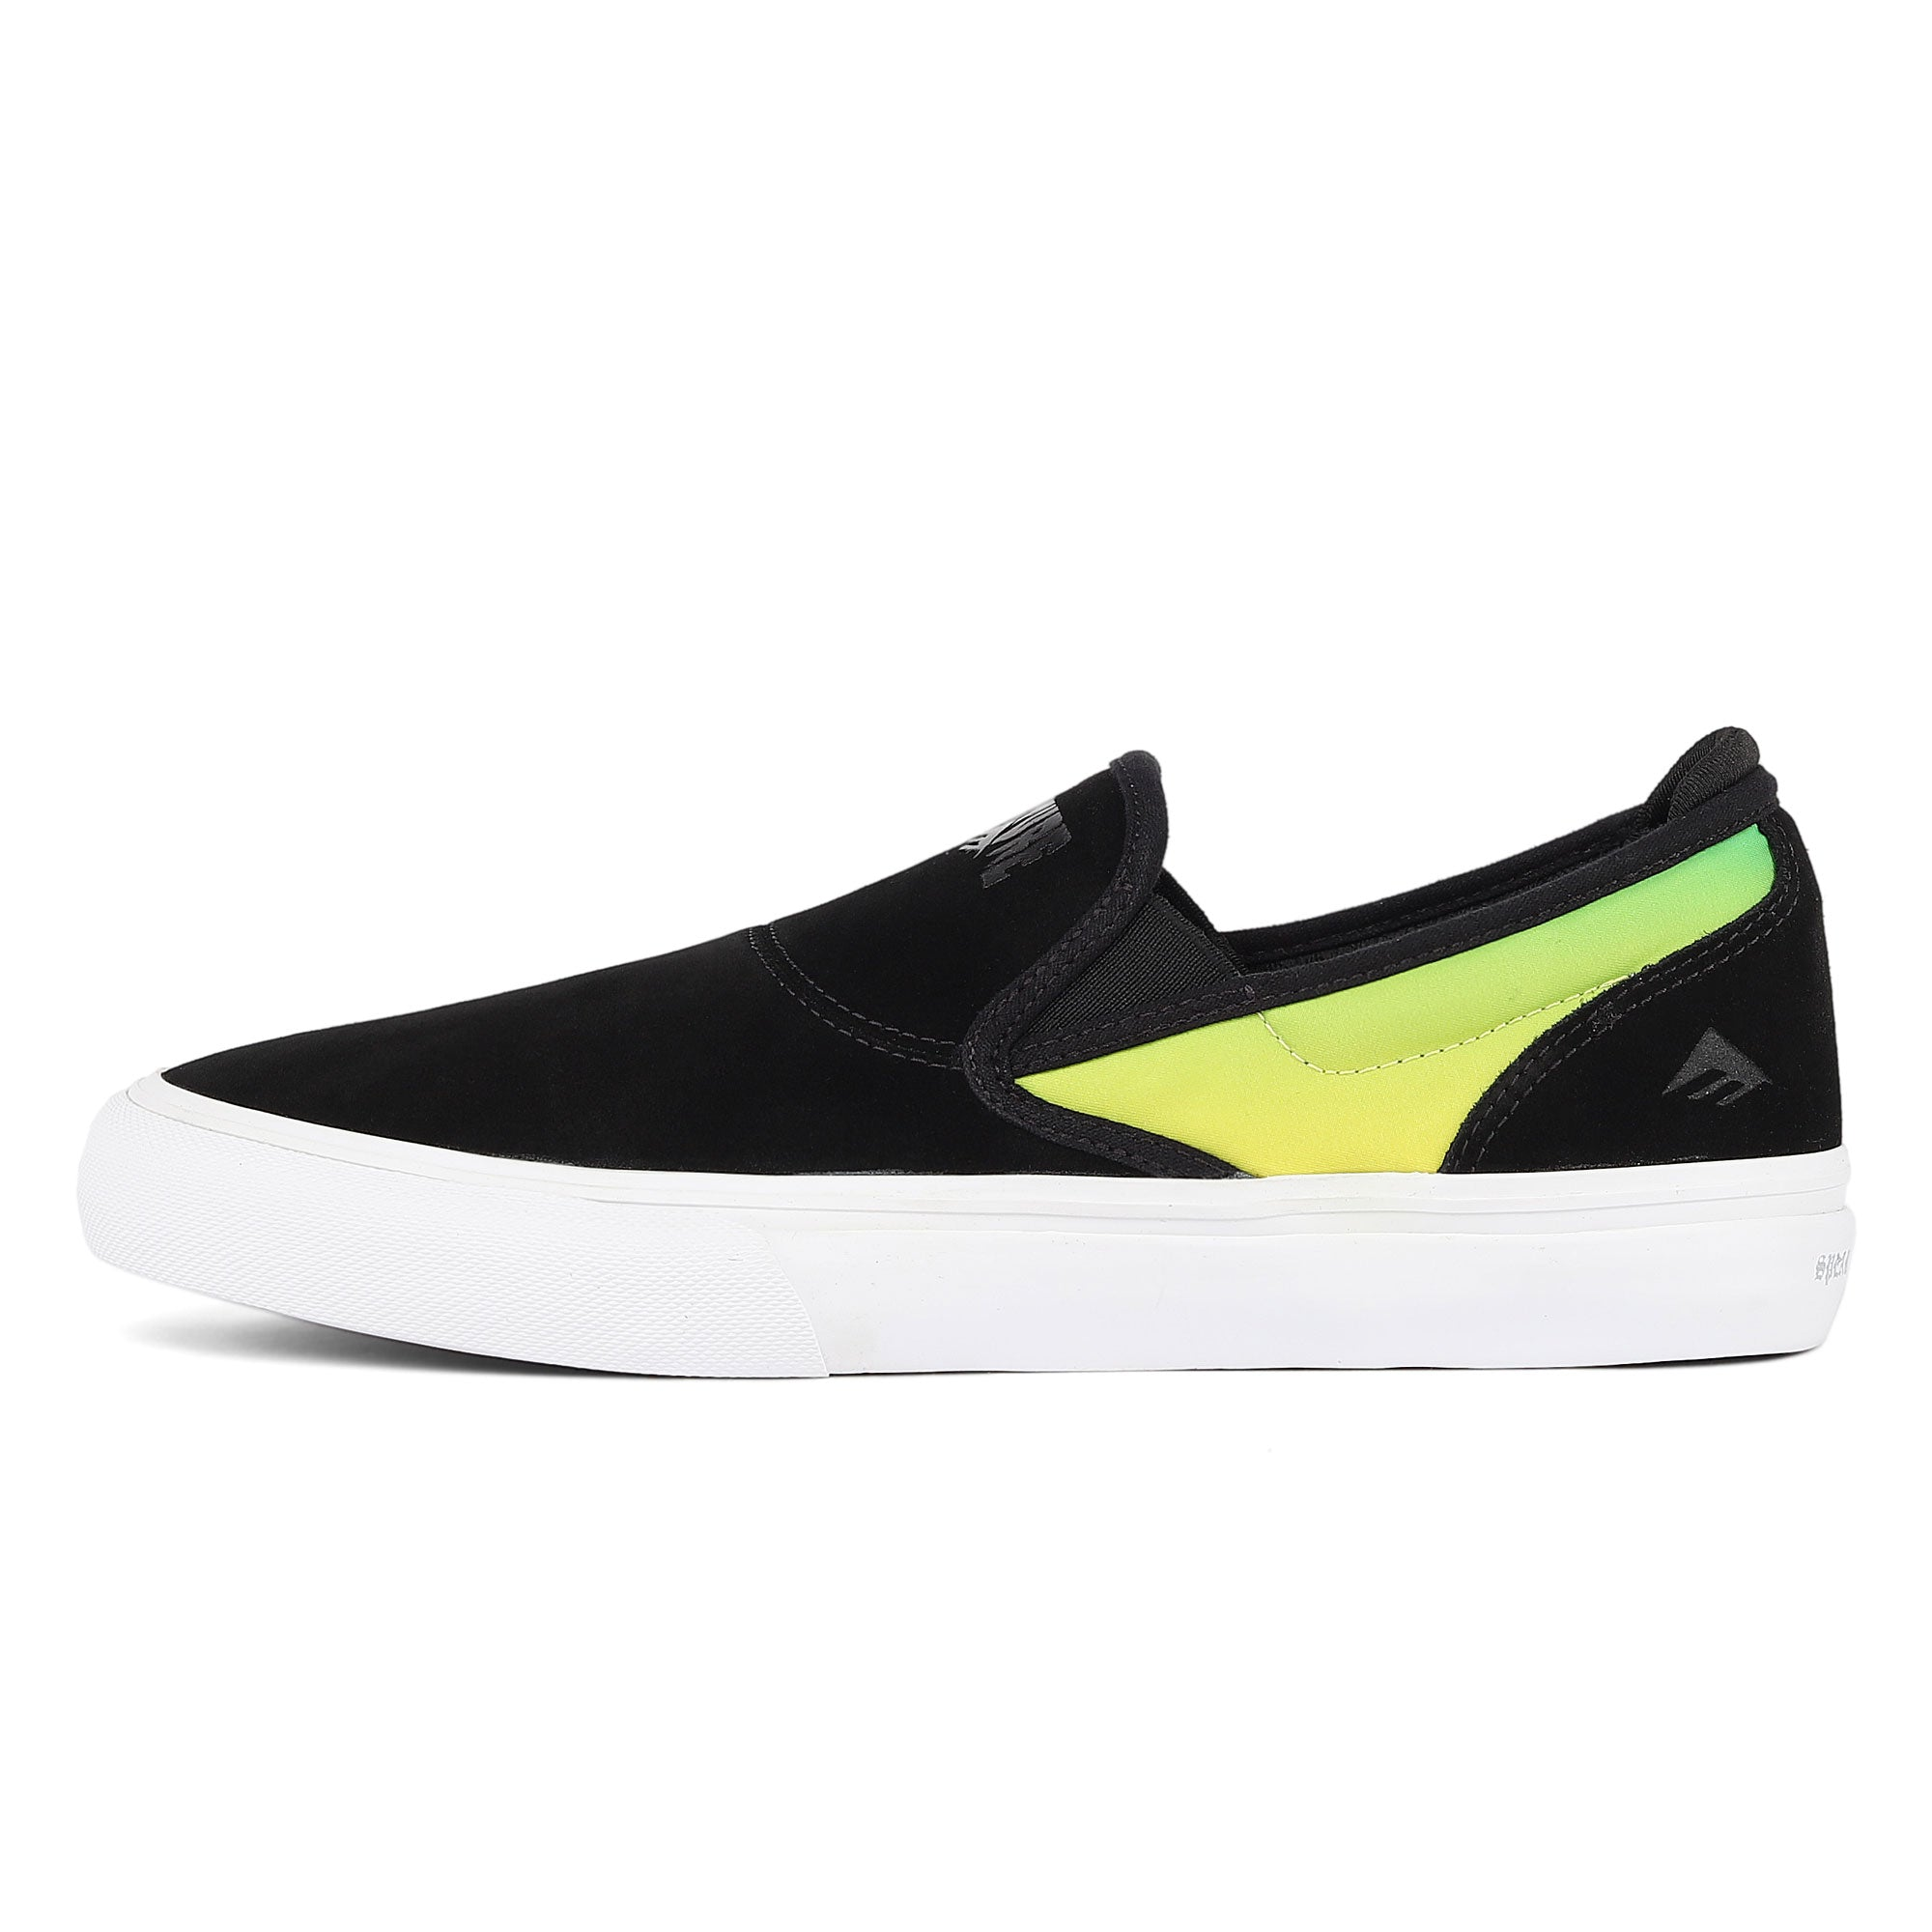 Emerica Wino G6 x Creature Slip Product Photo #1